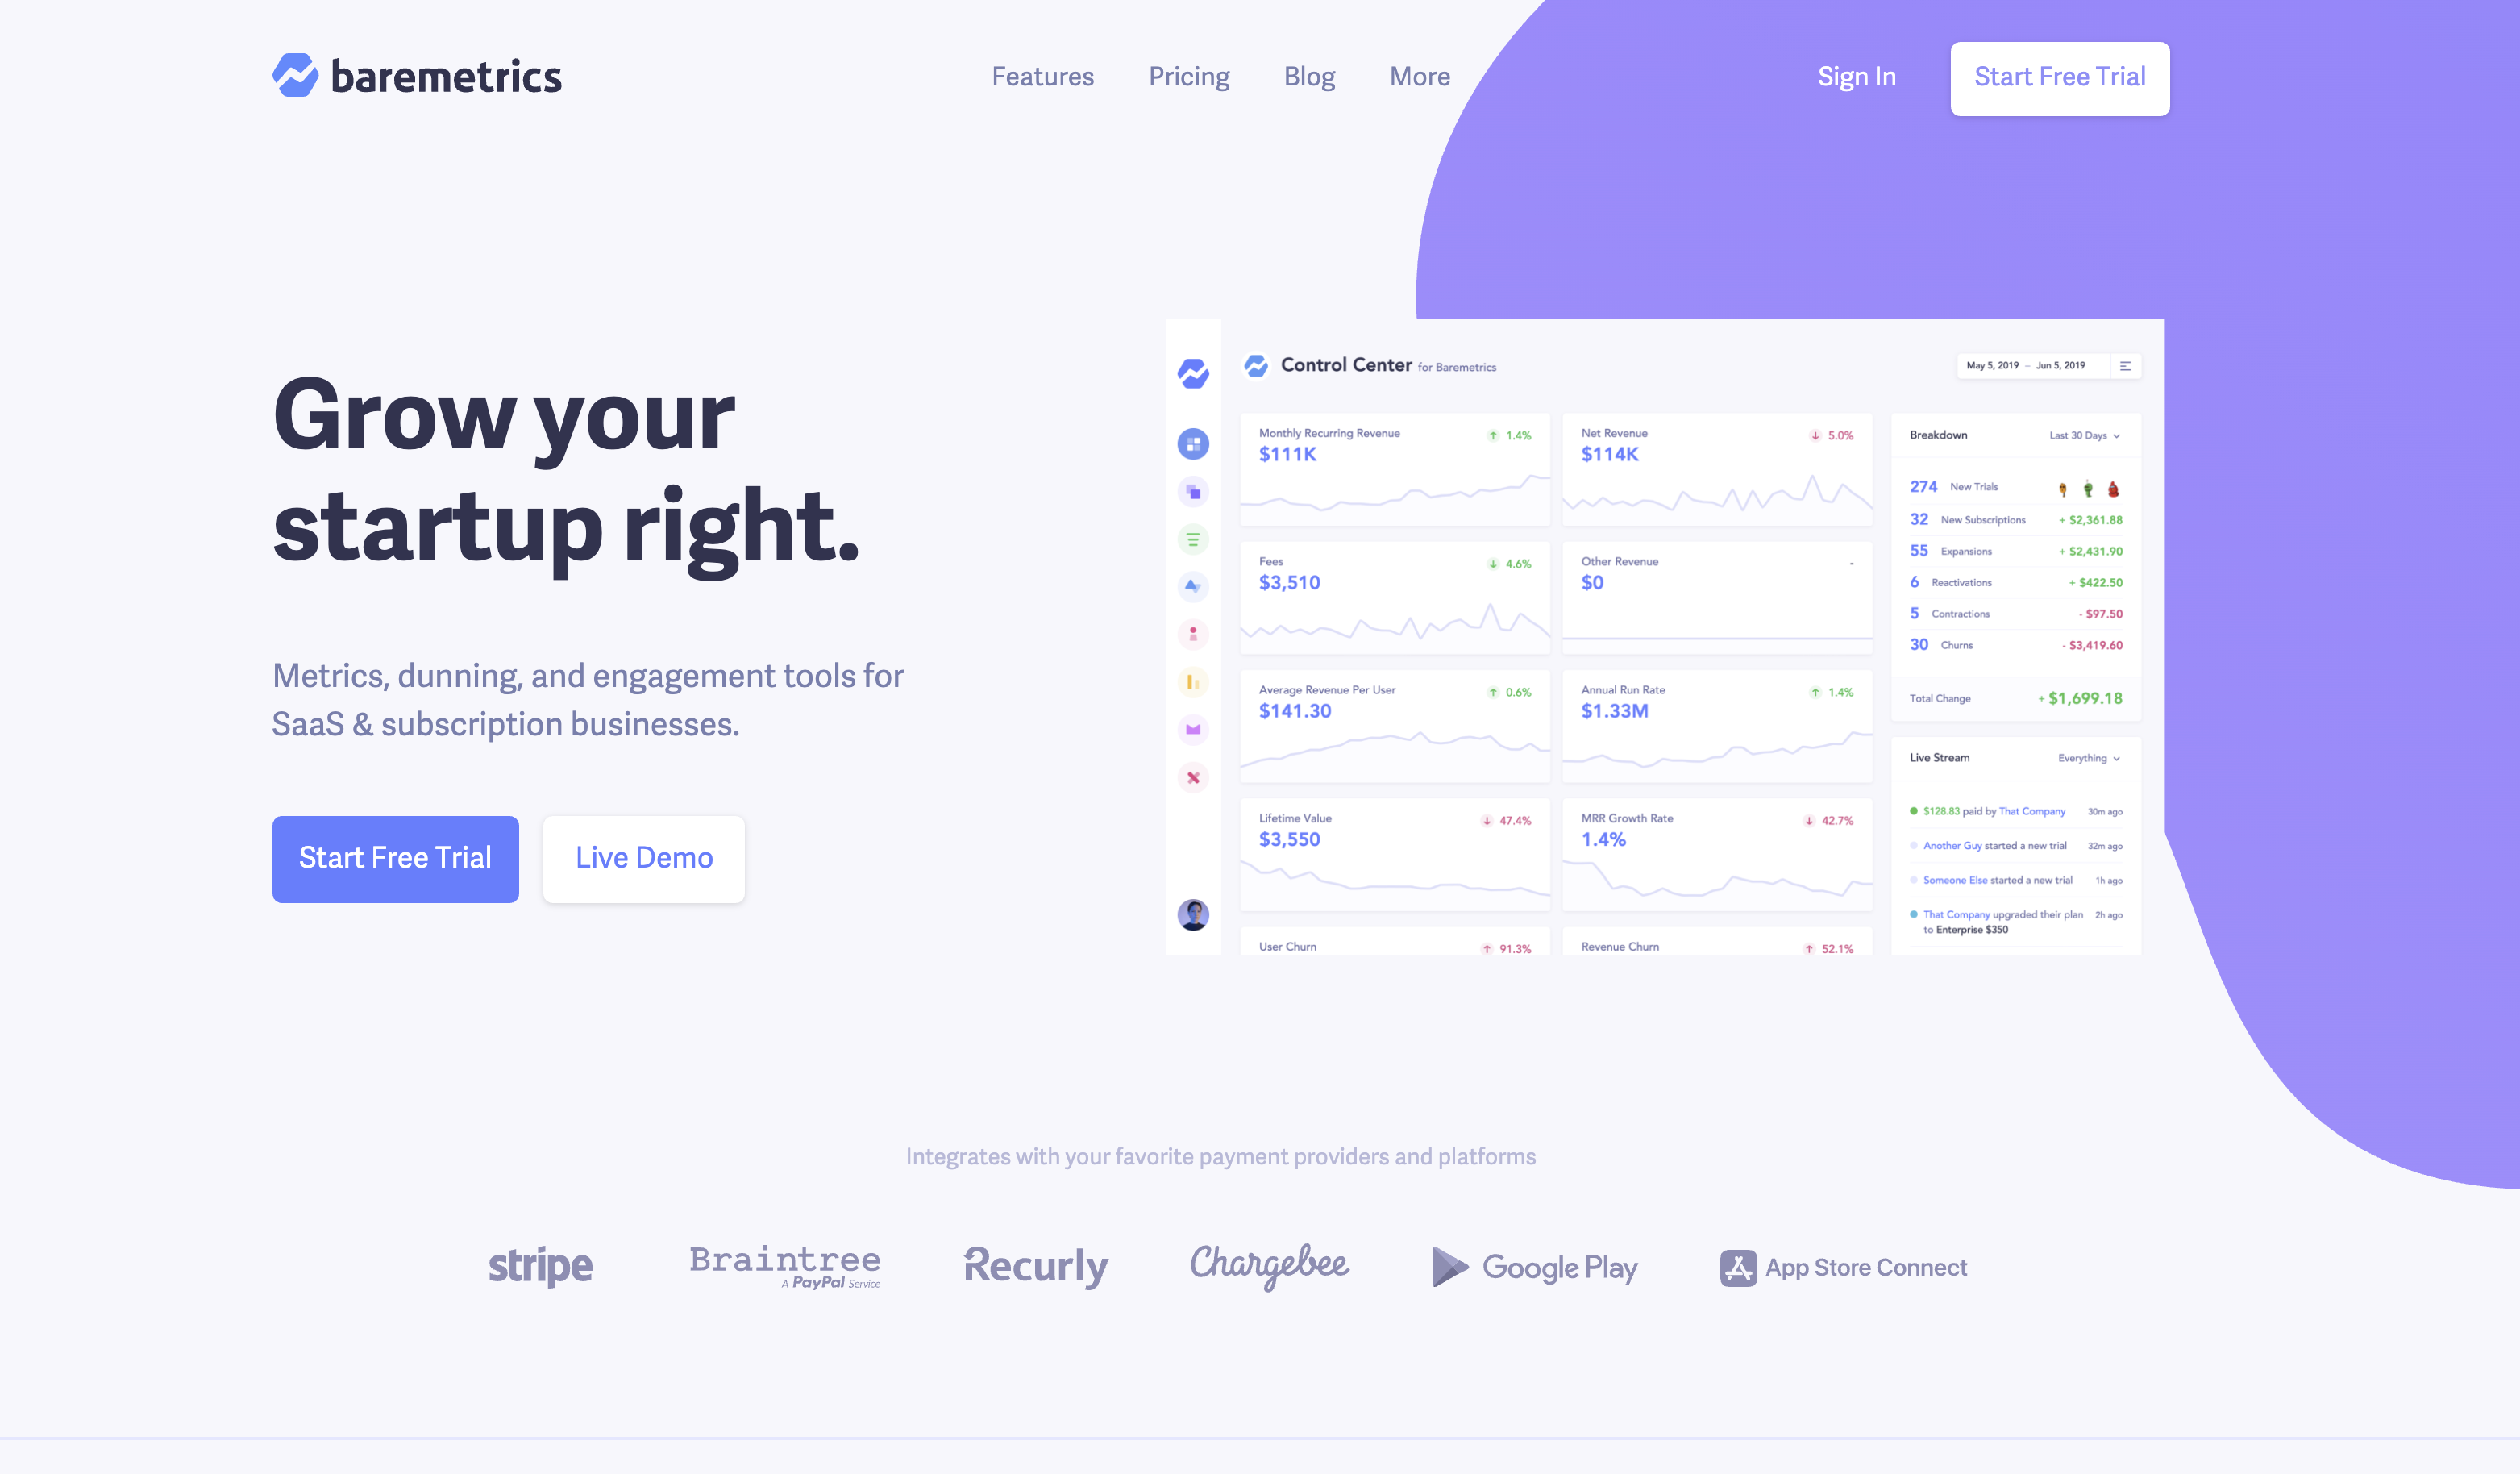 Baremetrics Homepage, Grow your startup right.